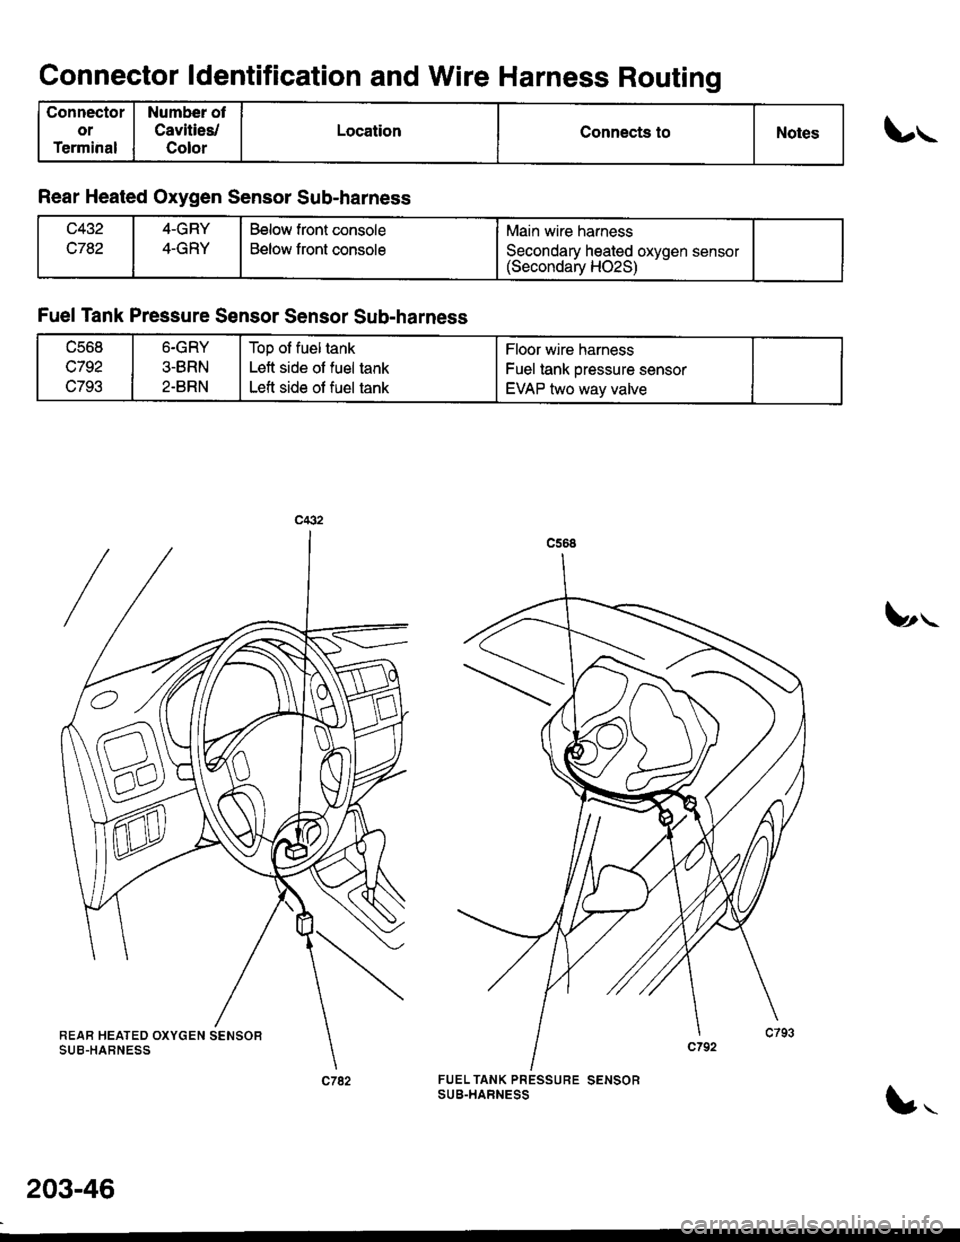 Honda Civic 1997 6g Workshop Manual Wiring Harness Routing And Design Page 2187 Connector Ldentification Wire